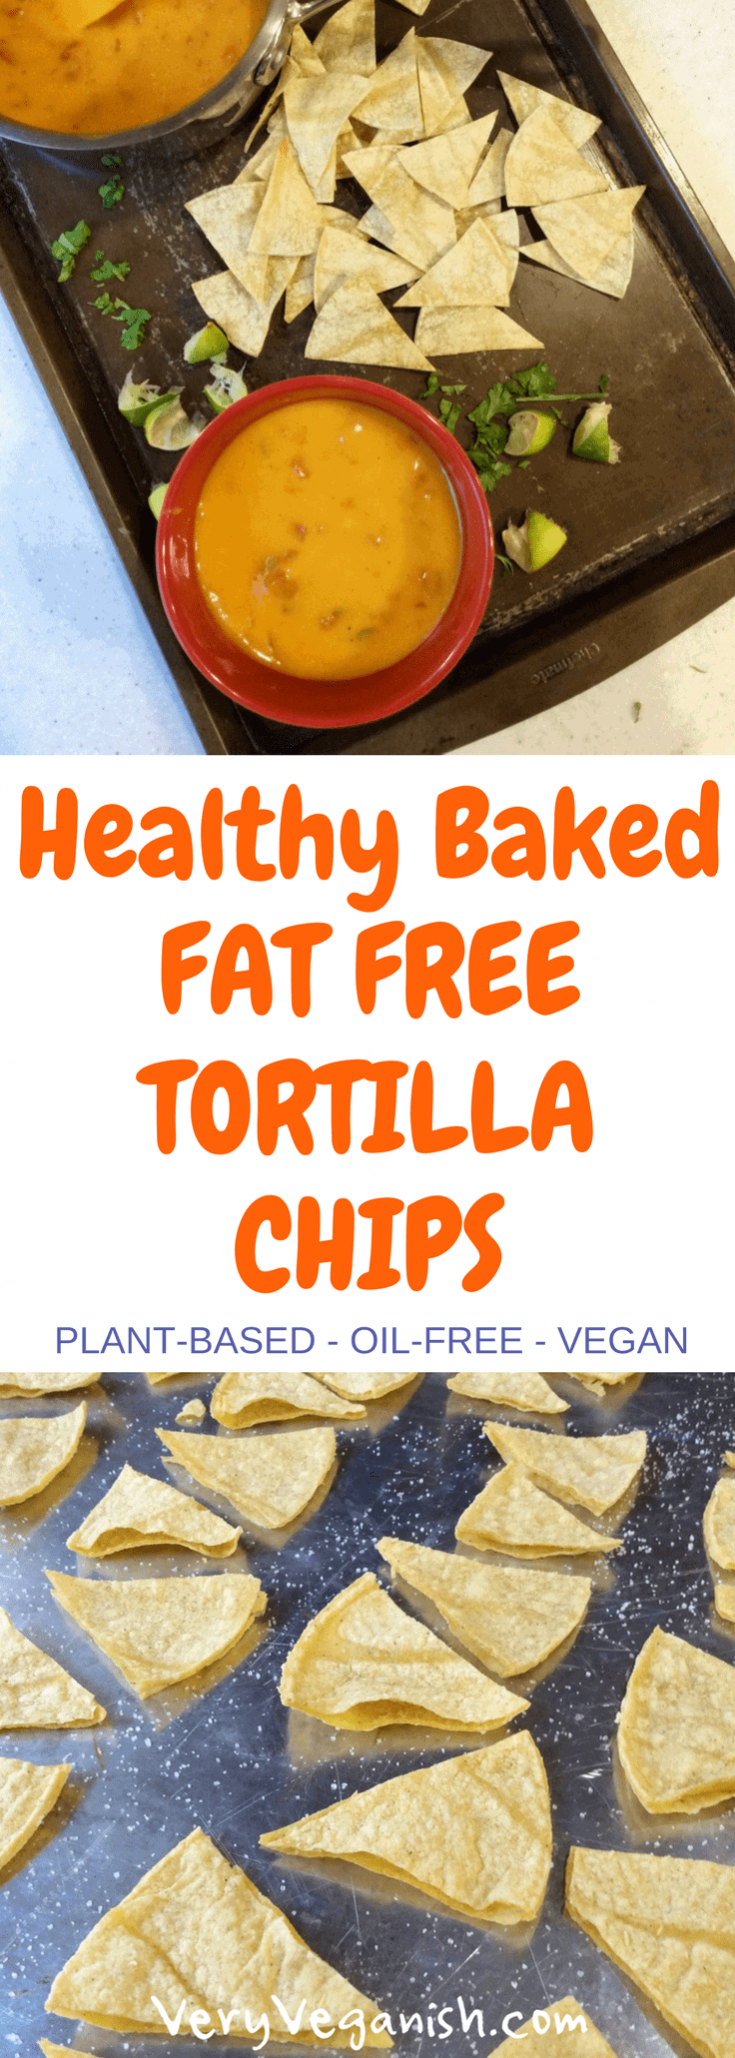 Healthy and Easy Homemade Baked Fat Free Tortilla Chips #bakedtortillachips #healthychips #healthytortillachips #chips #oilfreechips #fatfreechips